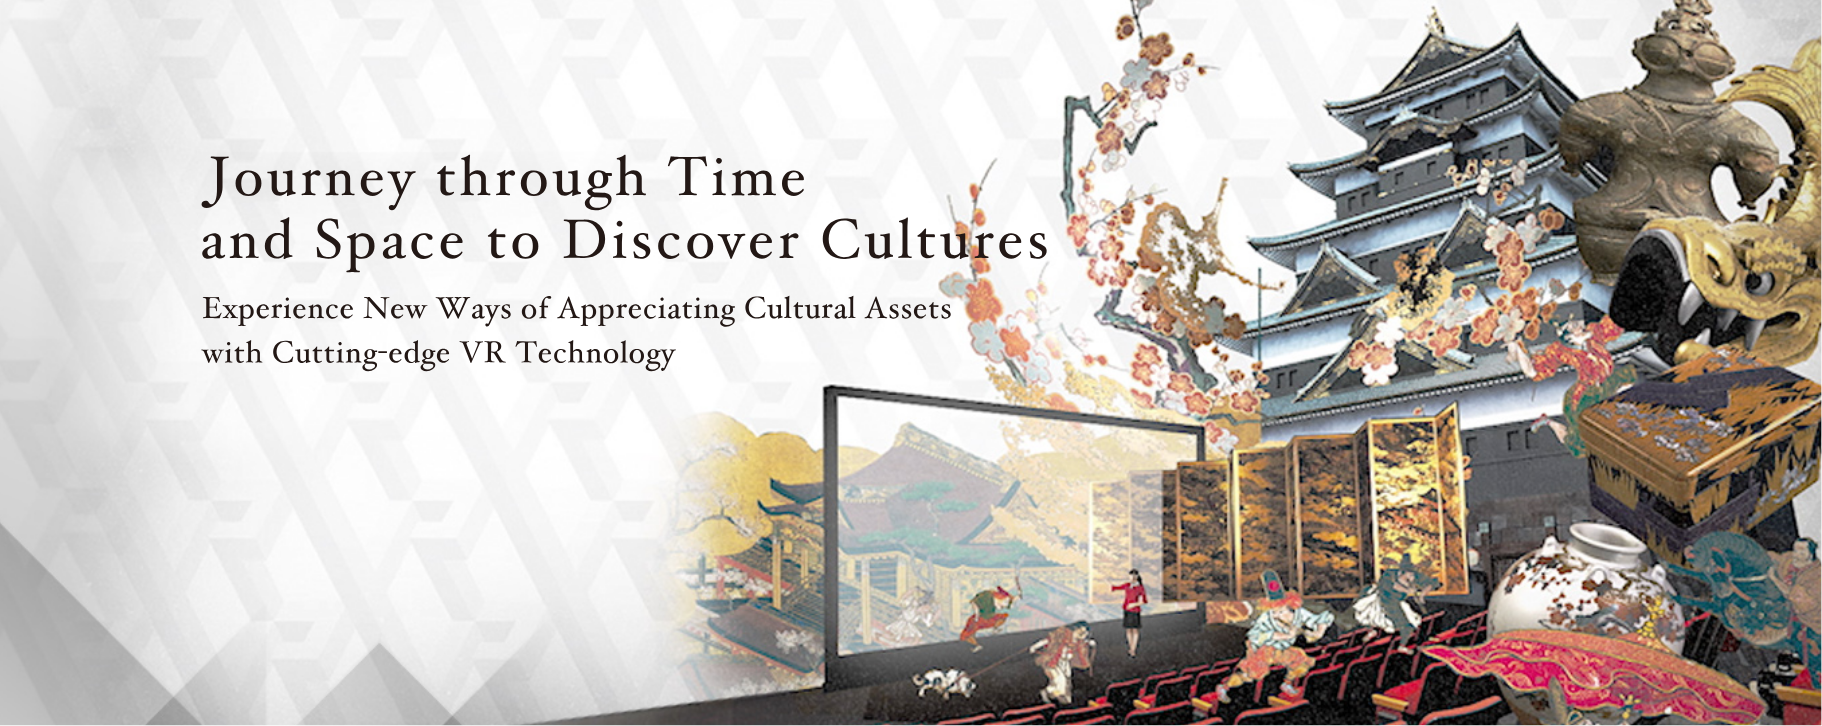 Journey through Time and Space to Discover Cultures